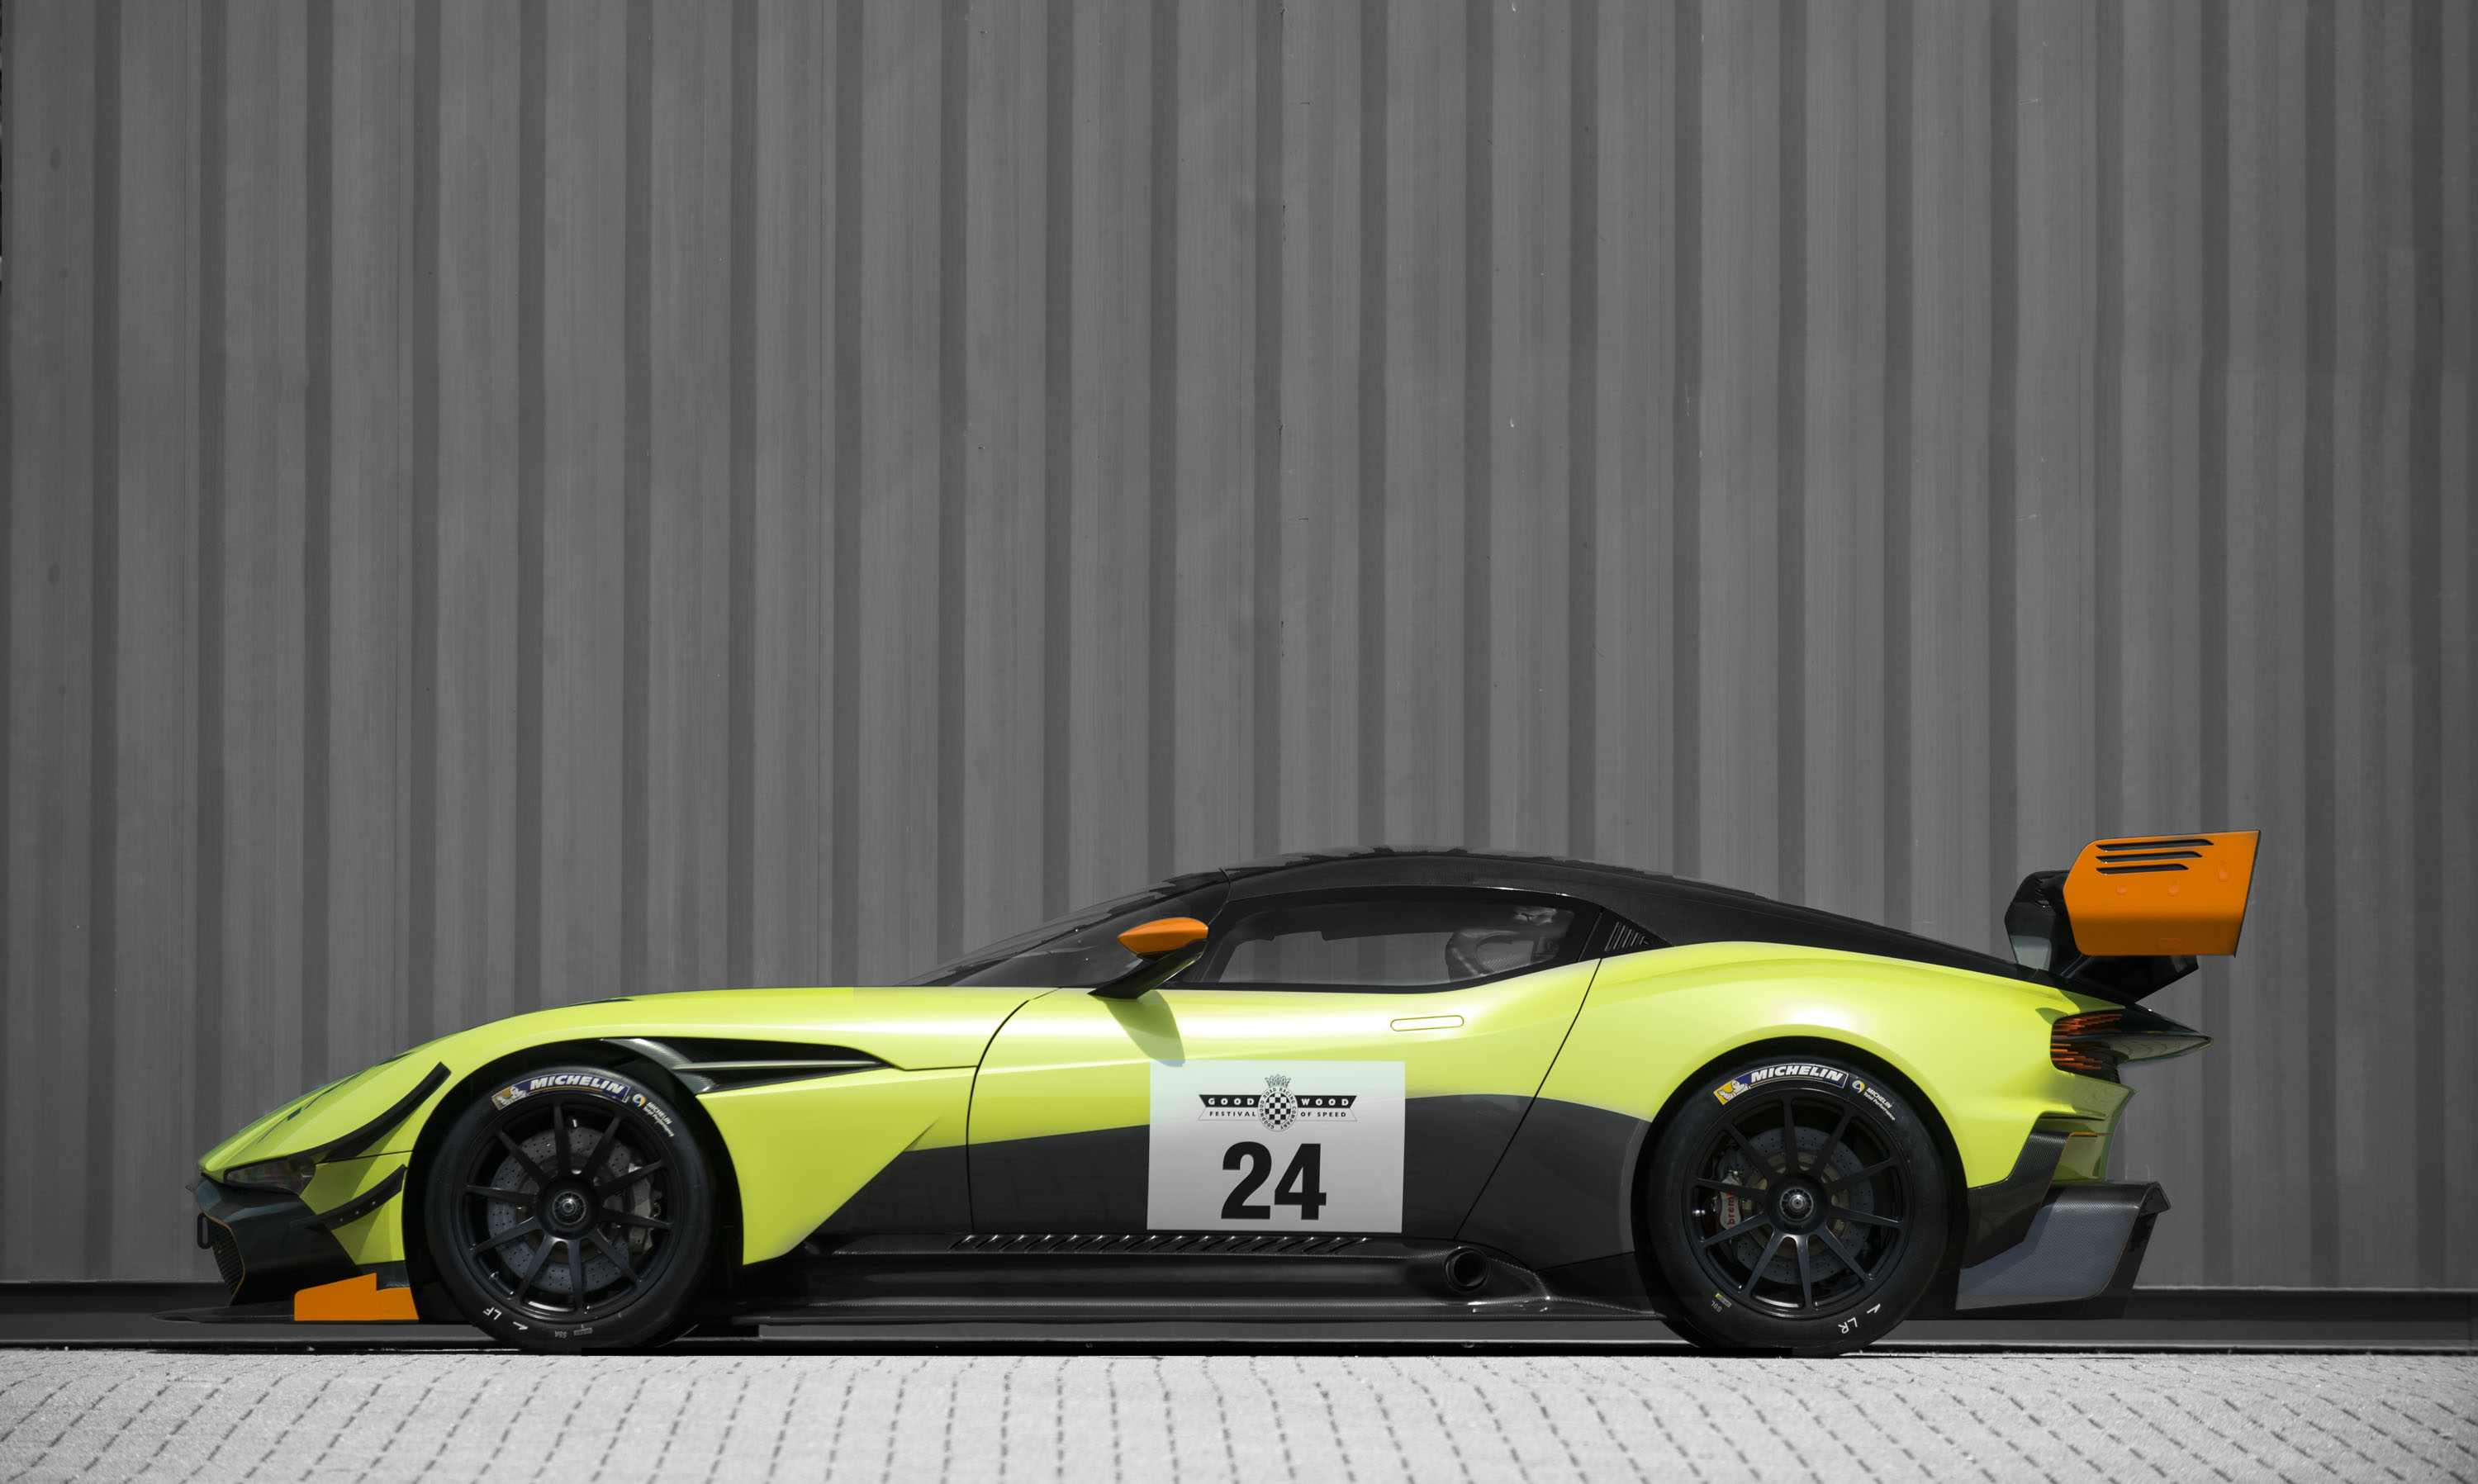 2018 Aston Martin Vulcan Amr Pro Top Speed